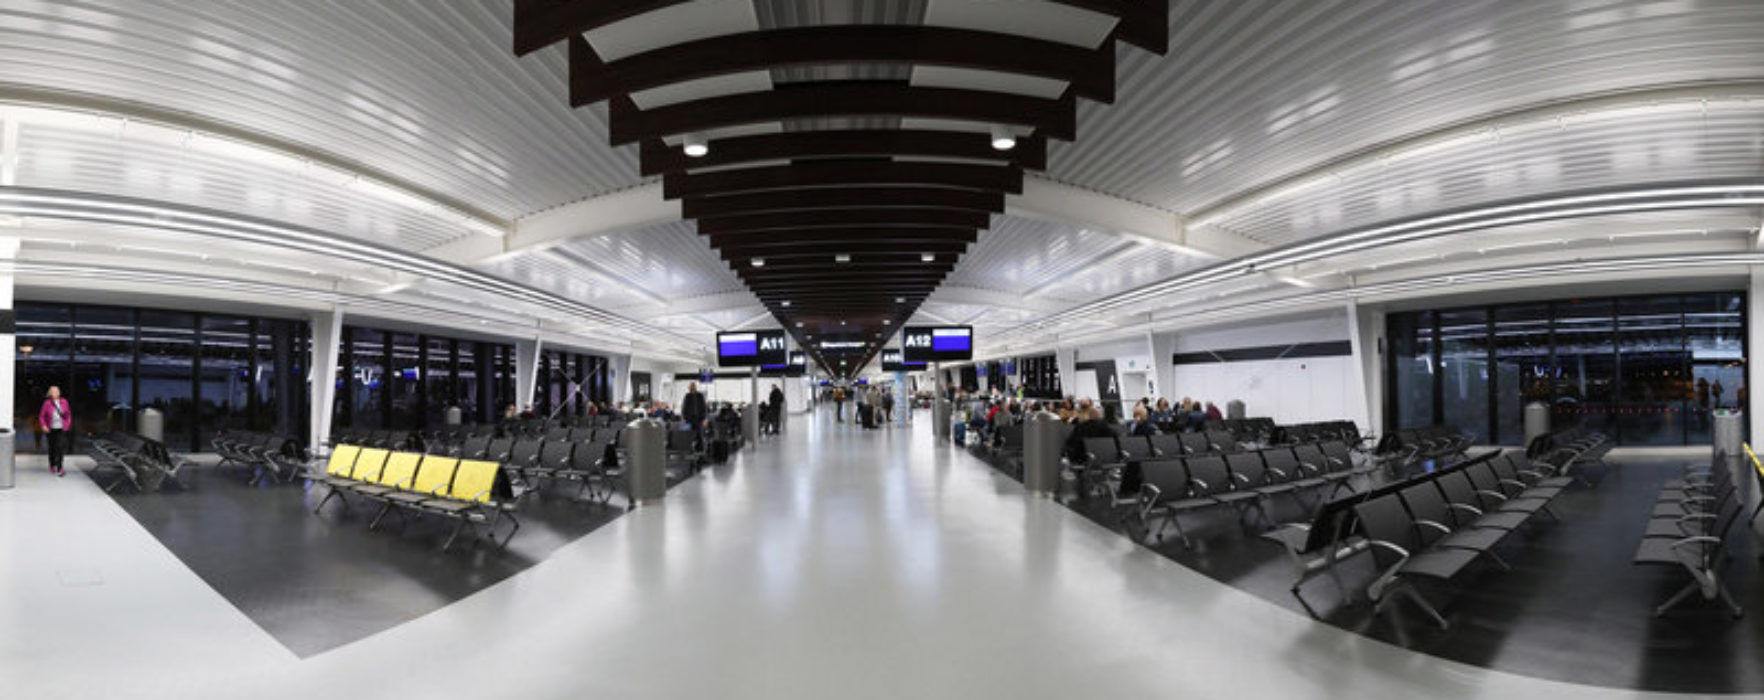 First phase of Manchester Airport's £1 billion transformation opens to passengers as flights depart from new pier